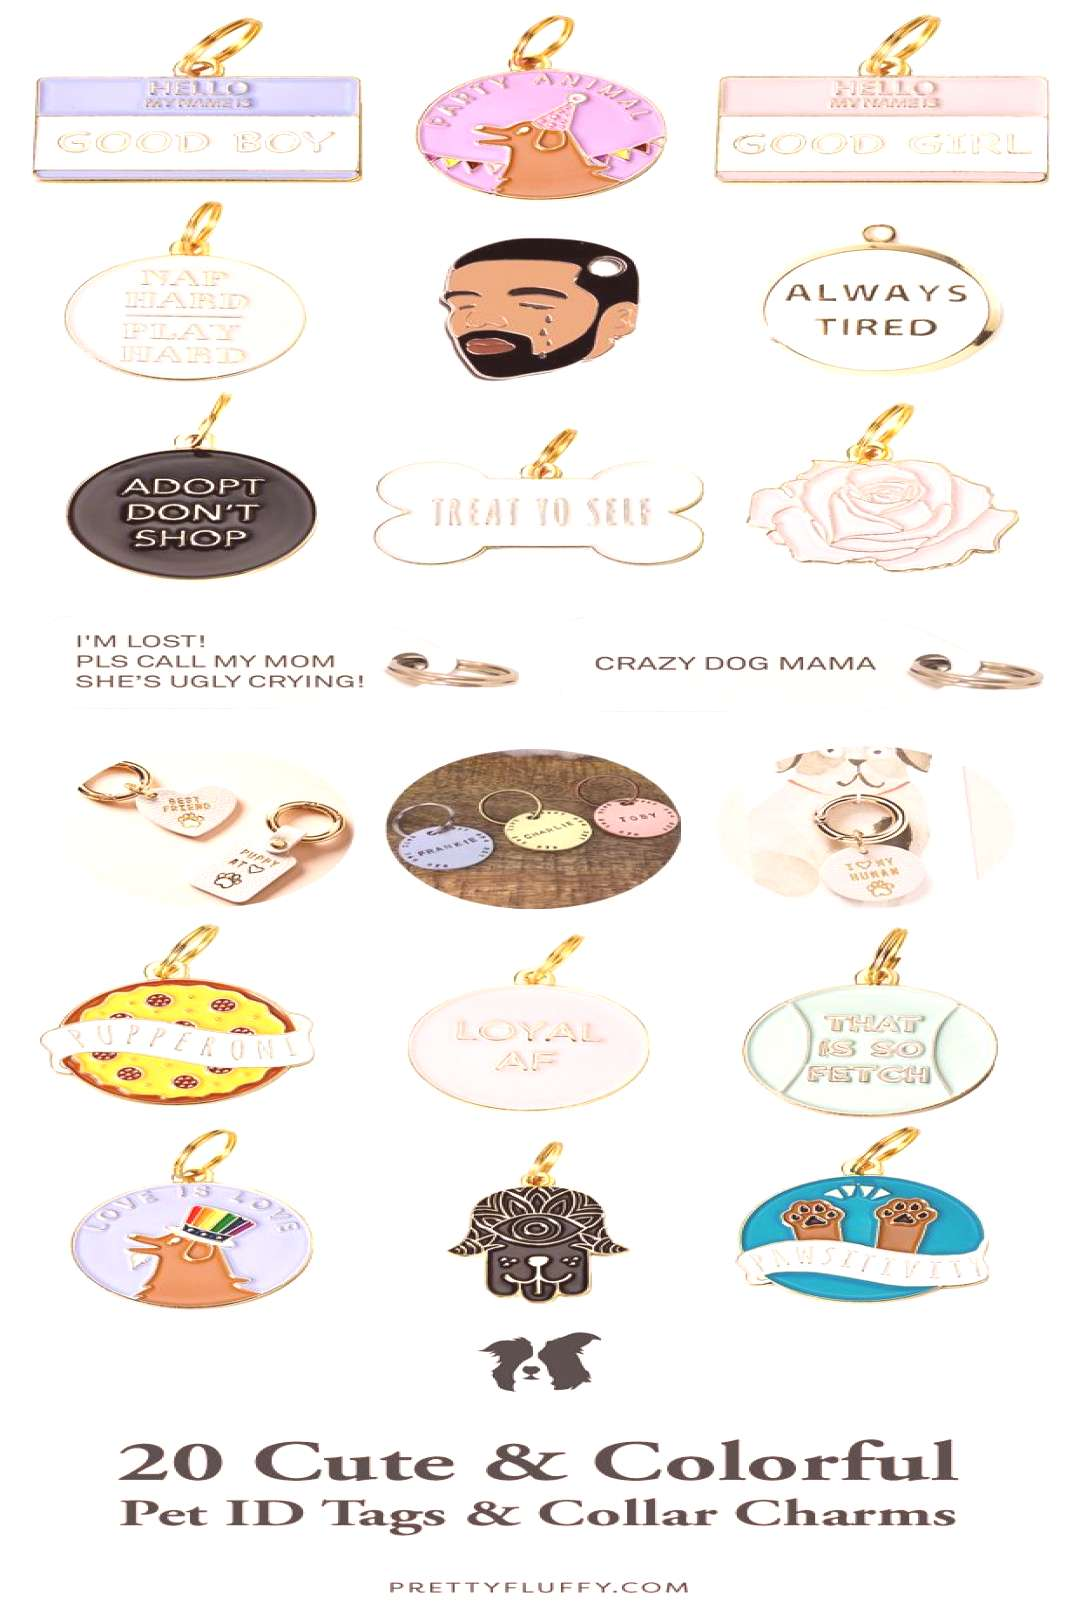 20 Cute & Colorful Pet ID Tags & Dog Collar Charms - Pretty Fluffy 20 Cute & Colorful Pet ID Tags &